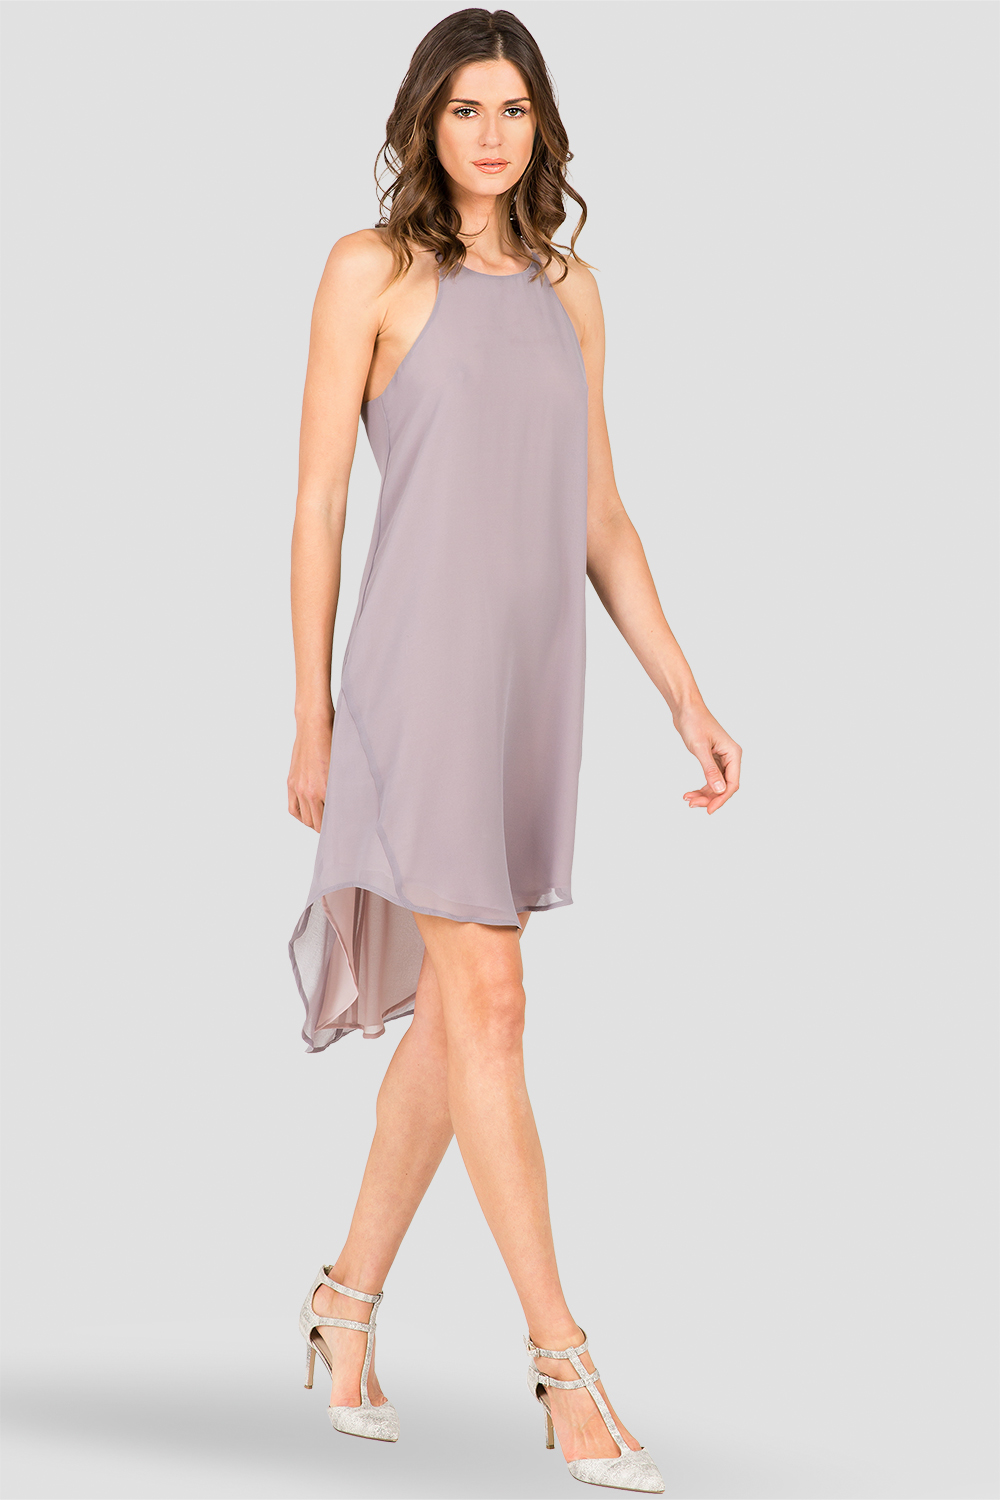 Women's Racerback Spaghetti Strap Gray Dress